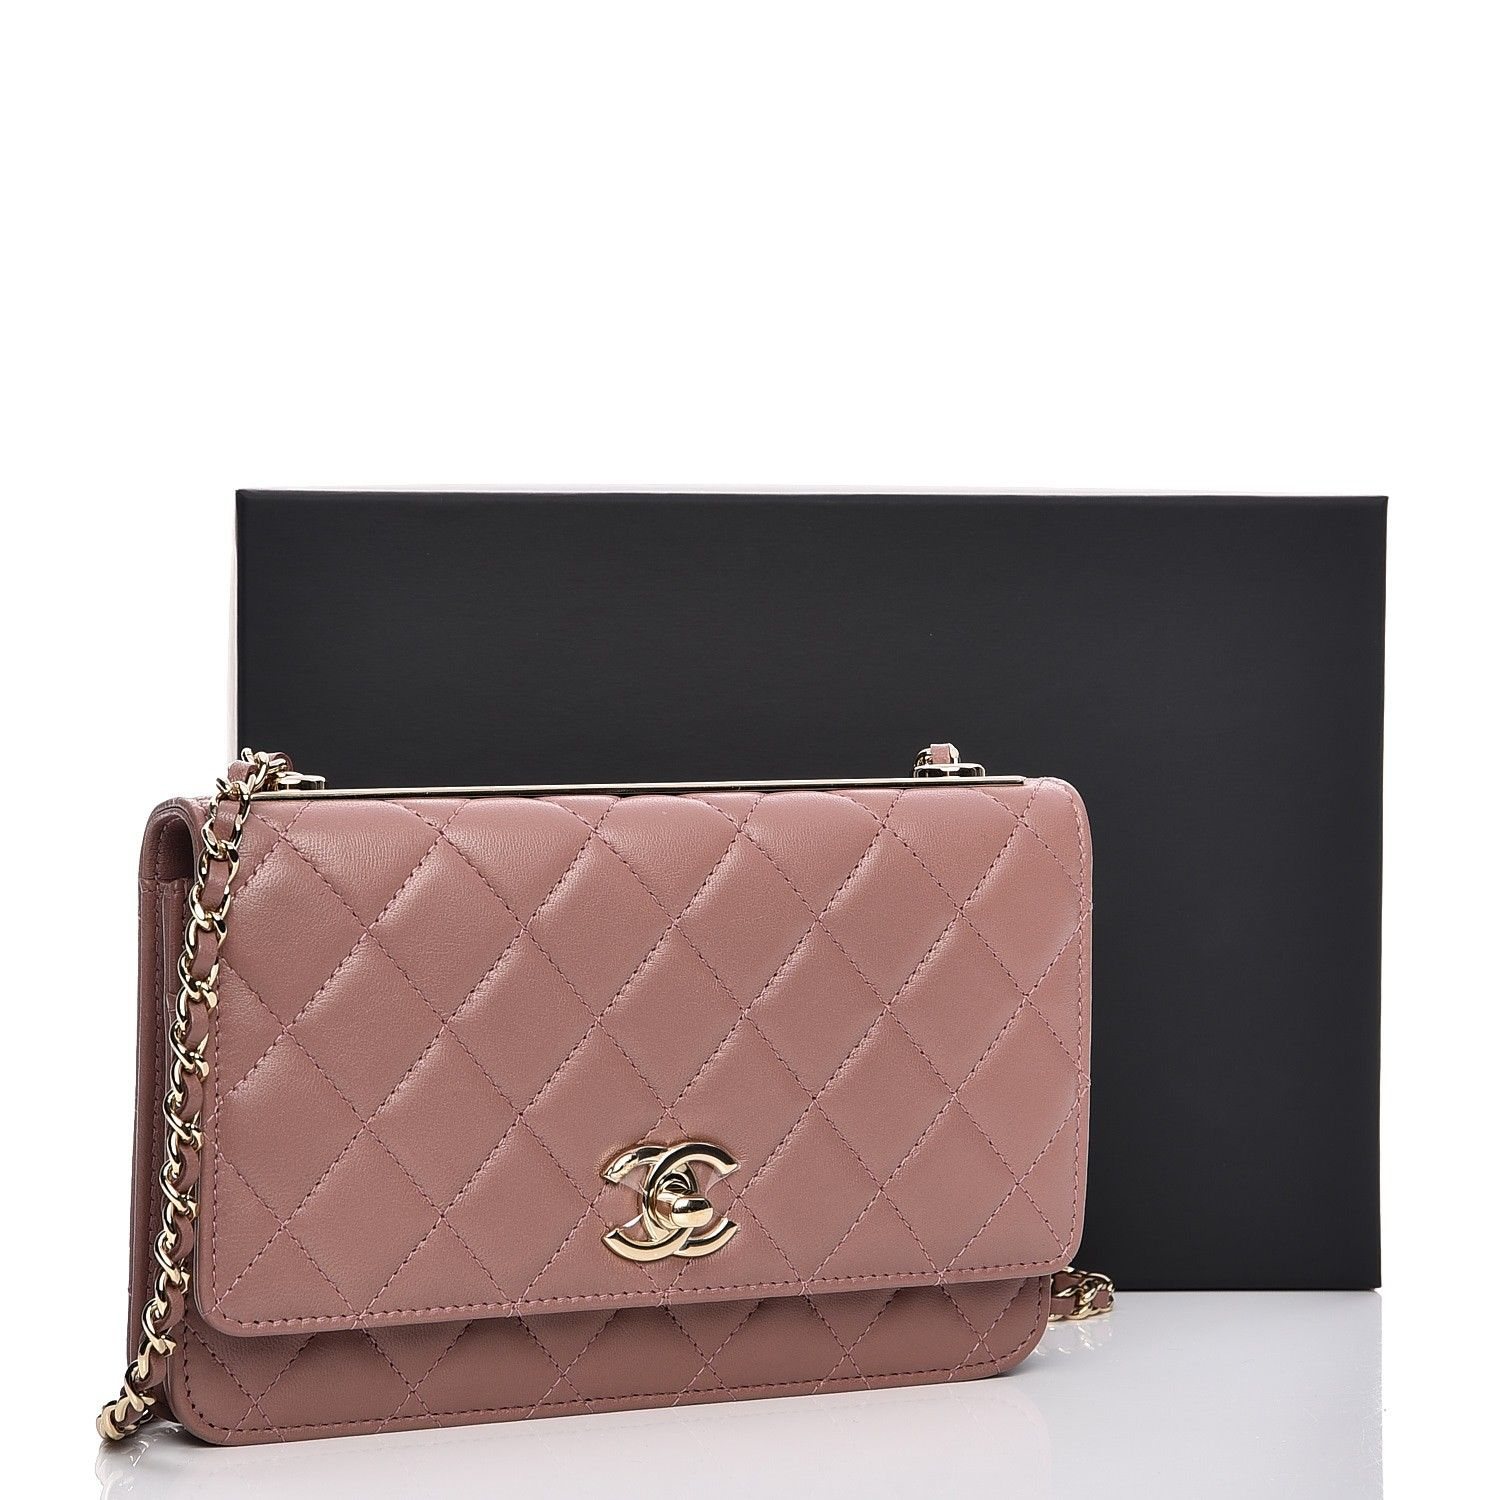 5e9ee218c9d0 This authentic CHANEL Lambskin Quilted Trendy CC Wallet On Chain WOC in Pink.  This wallet